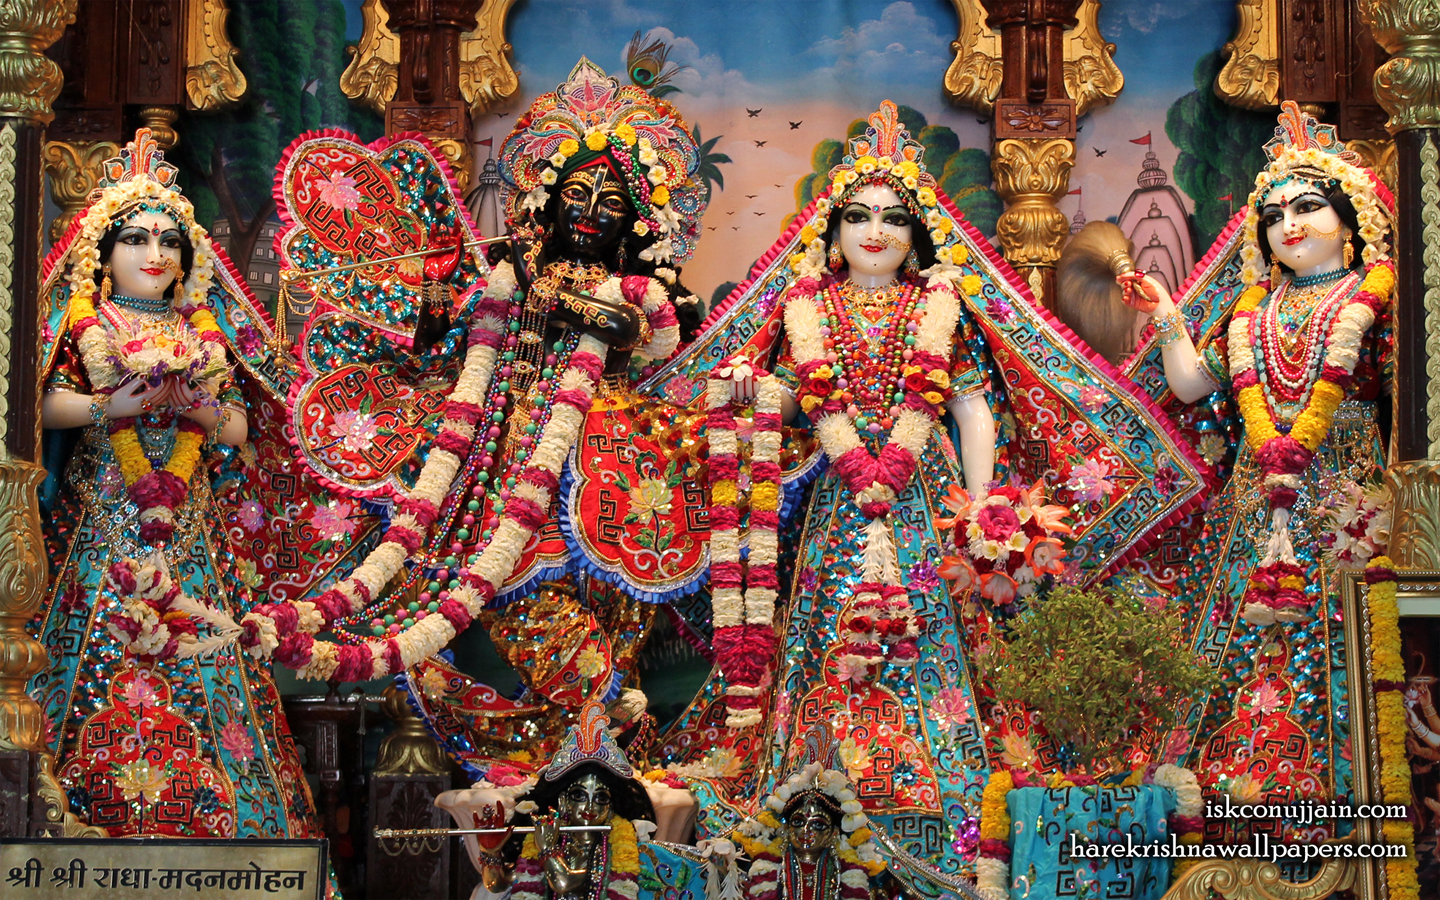 Sri Sri Radha Madanmohan Lalita Vishakha Wallpaper (004) Size 1440x900 Download